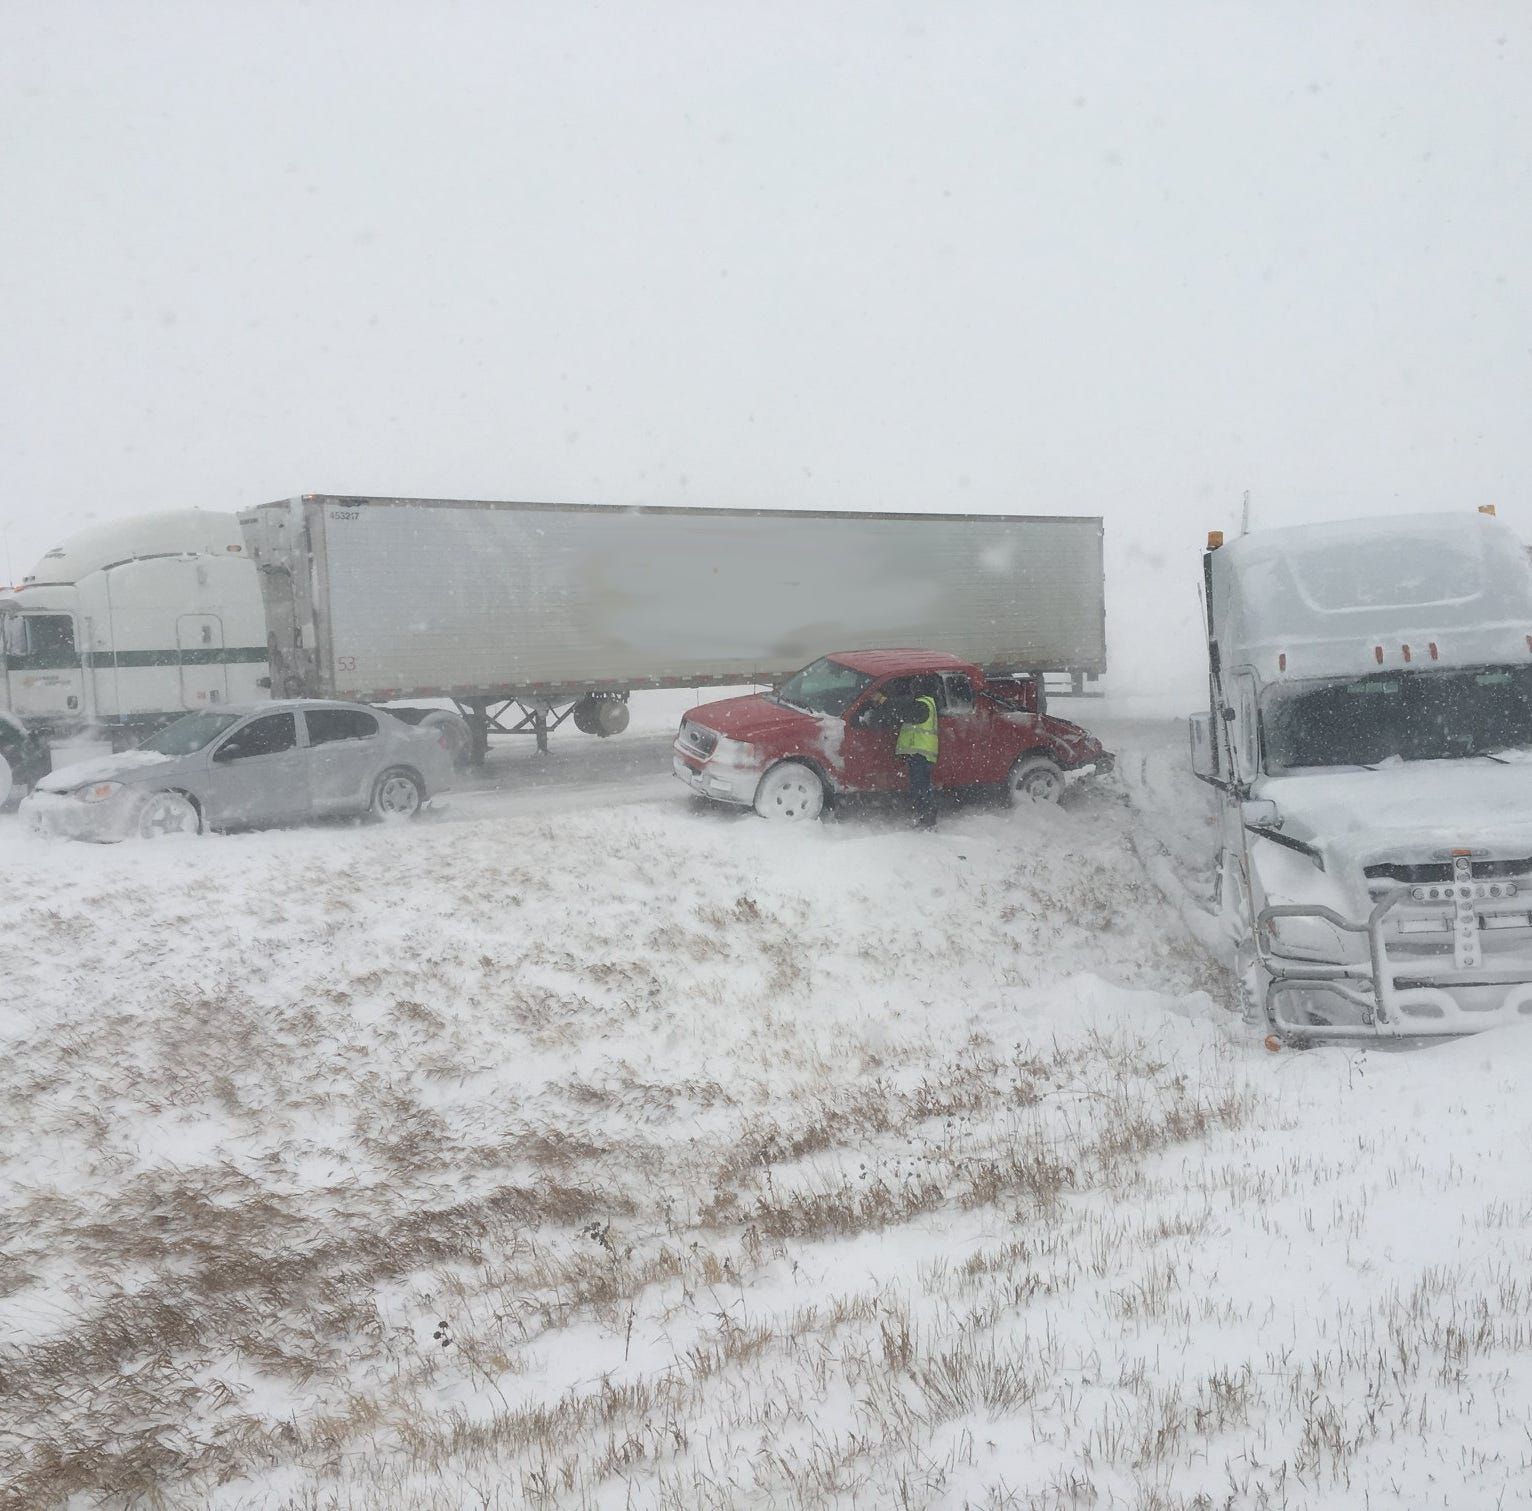 I-25 reopens in aftermath of 'bomb cyclone' blizzard